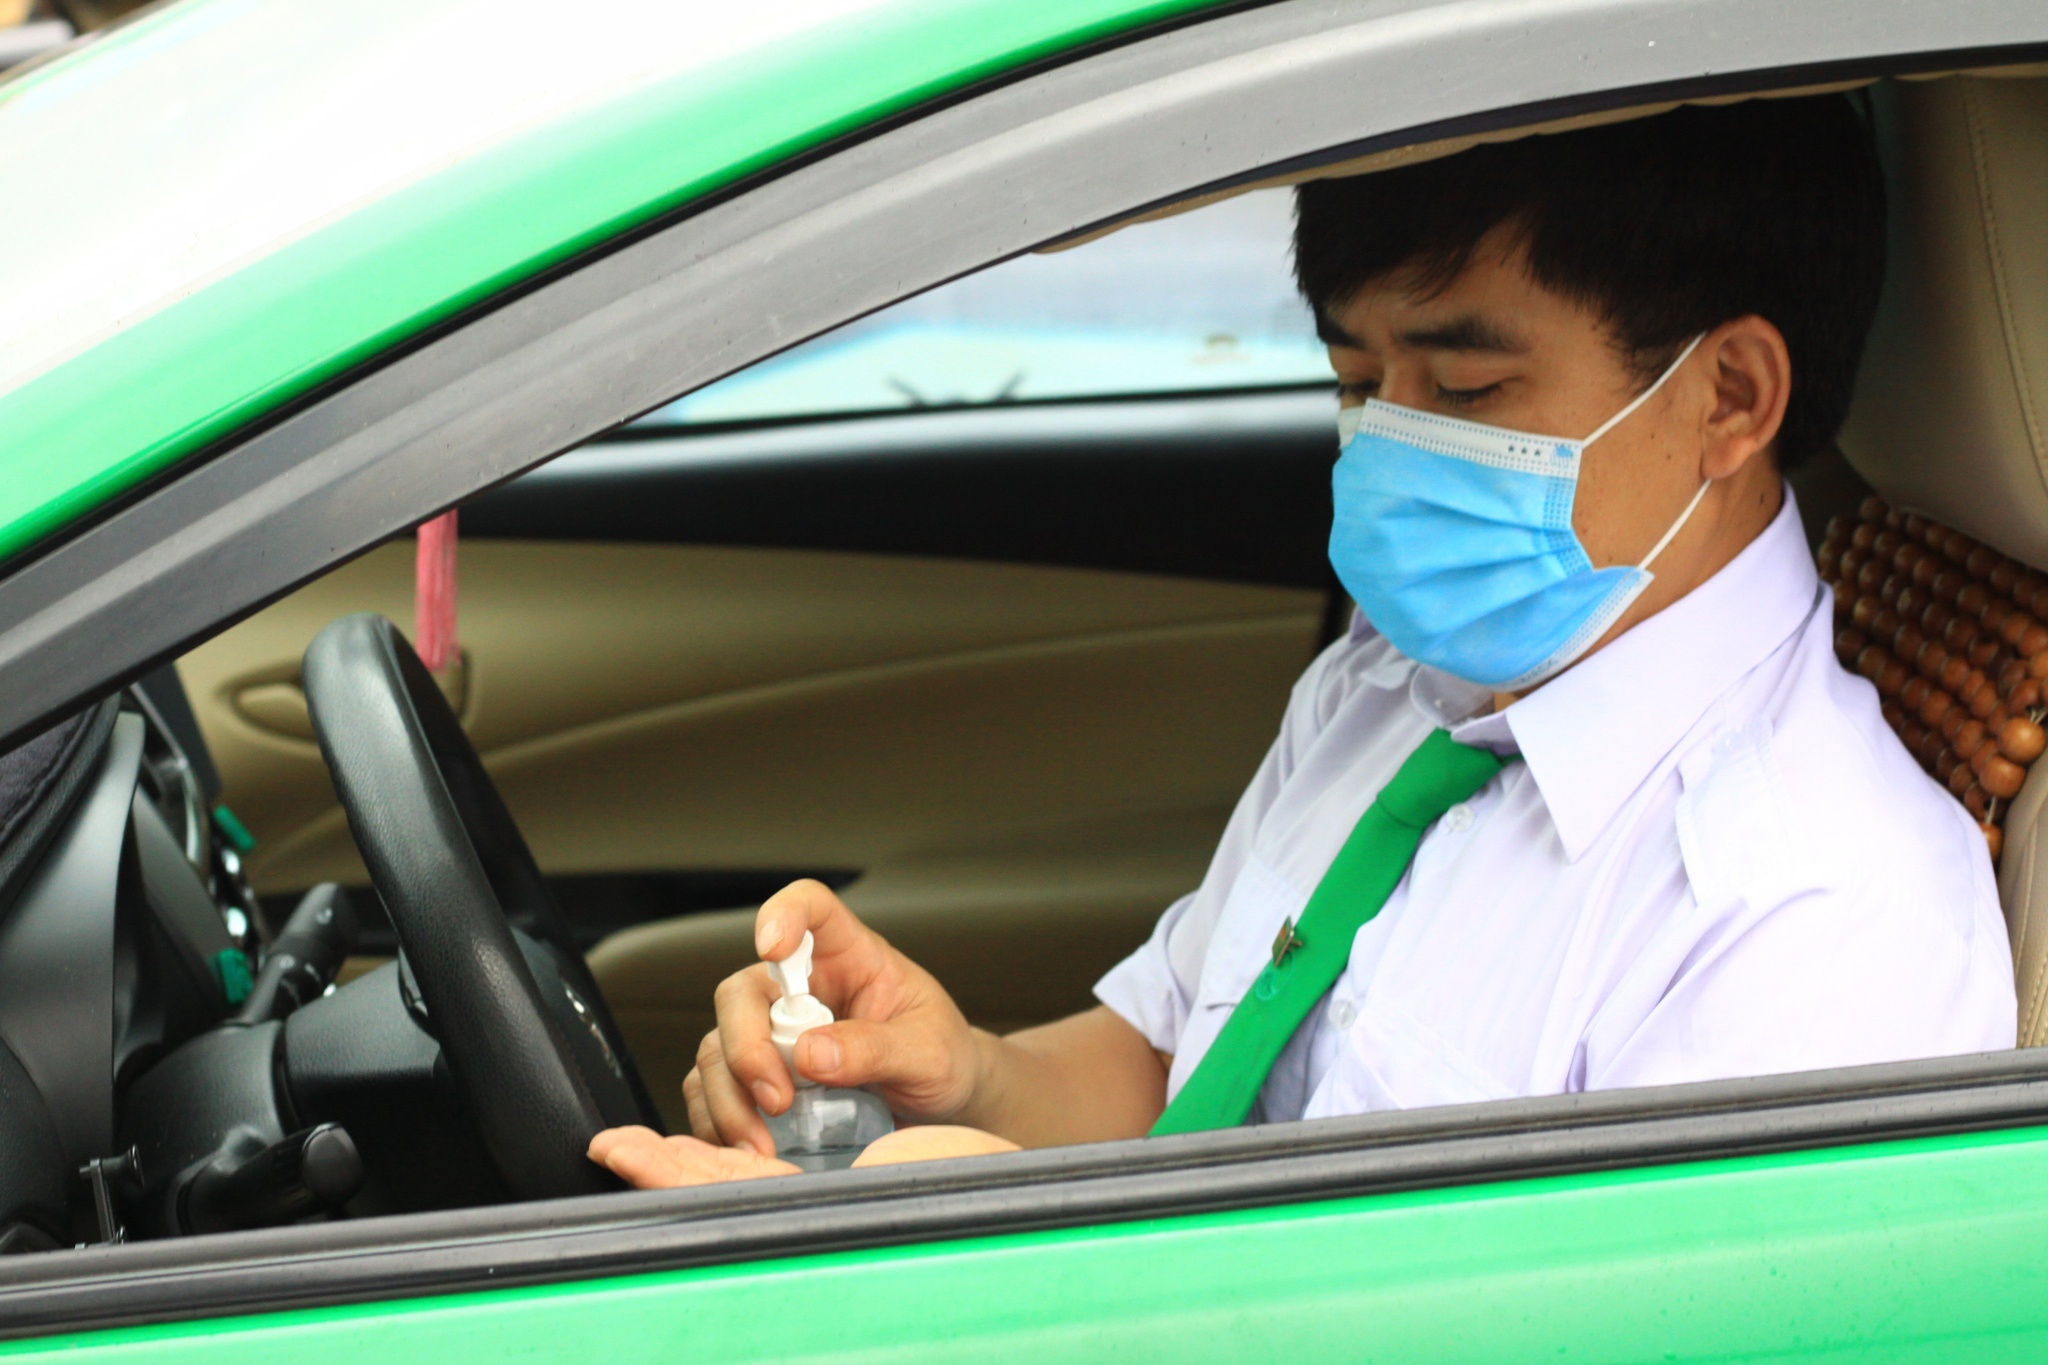 Covid Outbreak in Ho Chi Minh City: Taxi Stand, Tech Taxis;  Driver is concerned about 'non-compliance', is there any support?  - 4. Photo